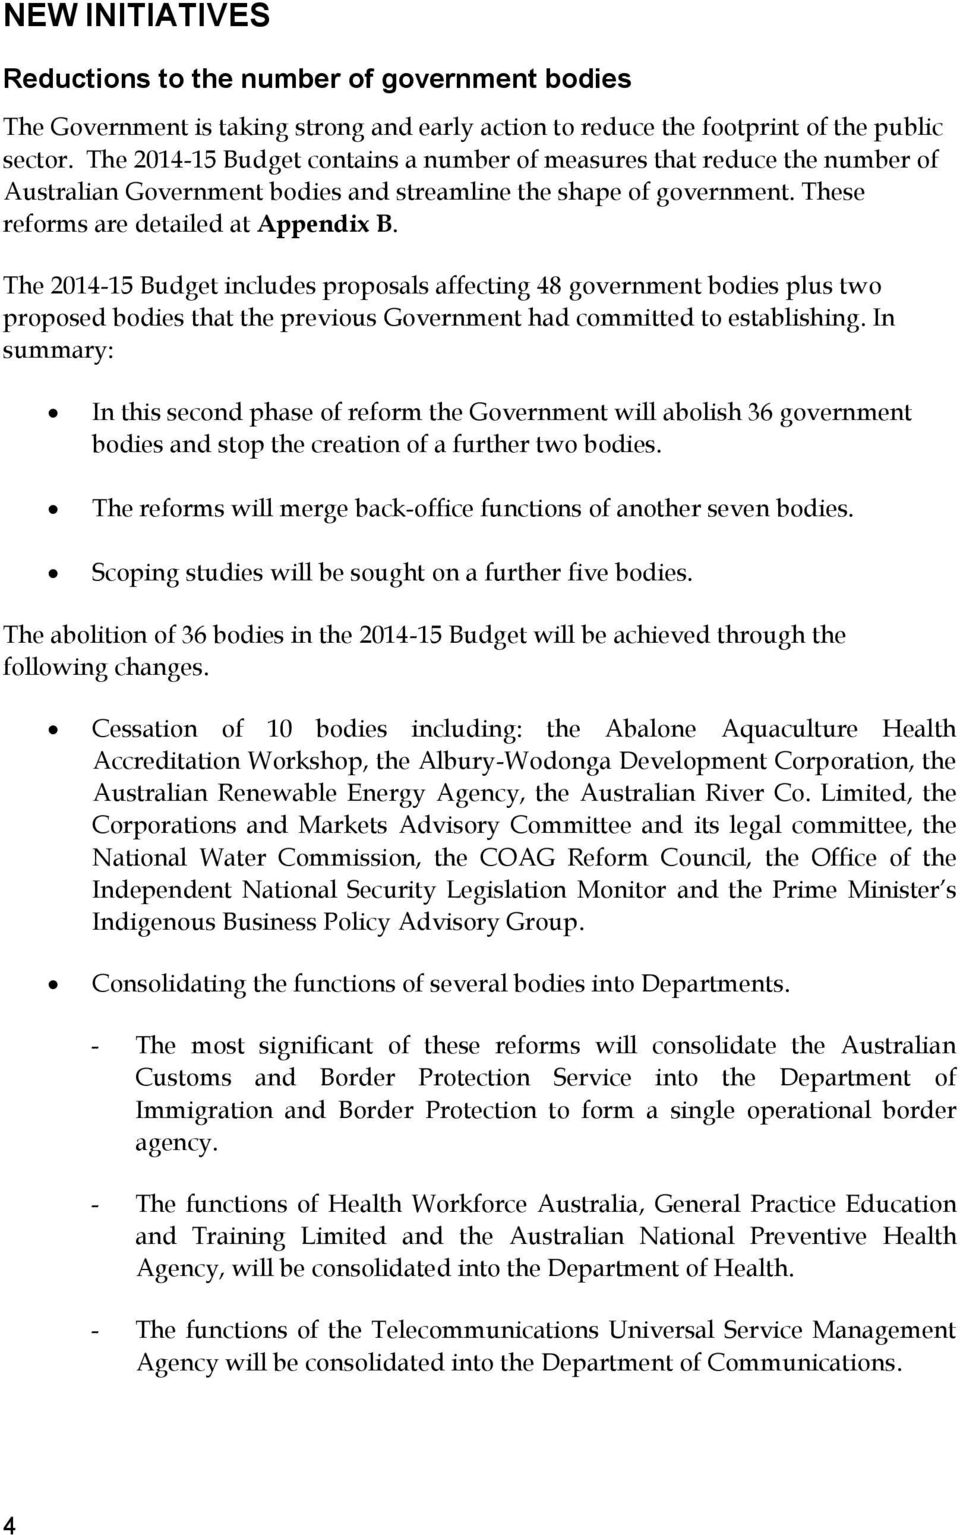 The 2014-15 Budget includes proposals affecting 48 government bodies plus two proposed bodies that the previous Government had committed to establishing.